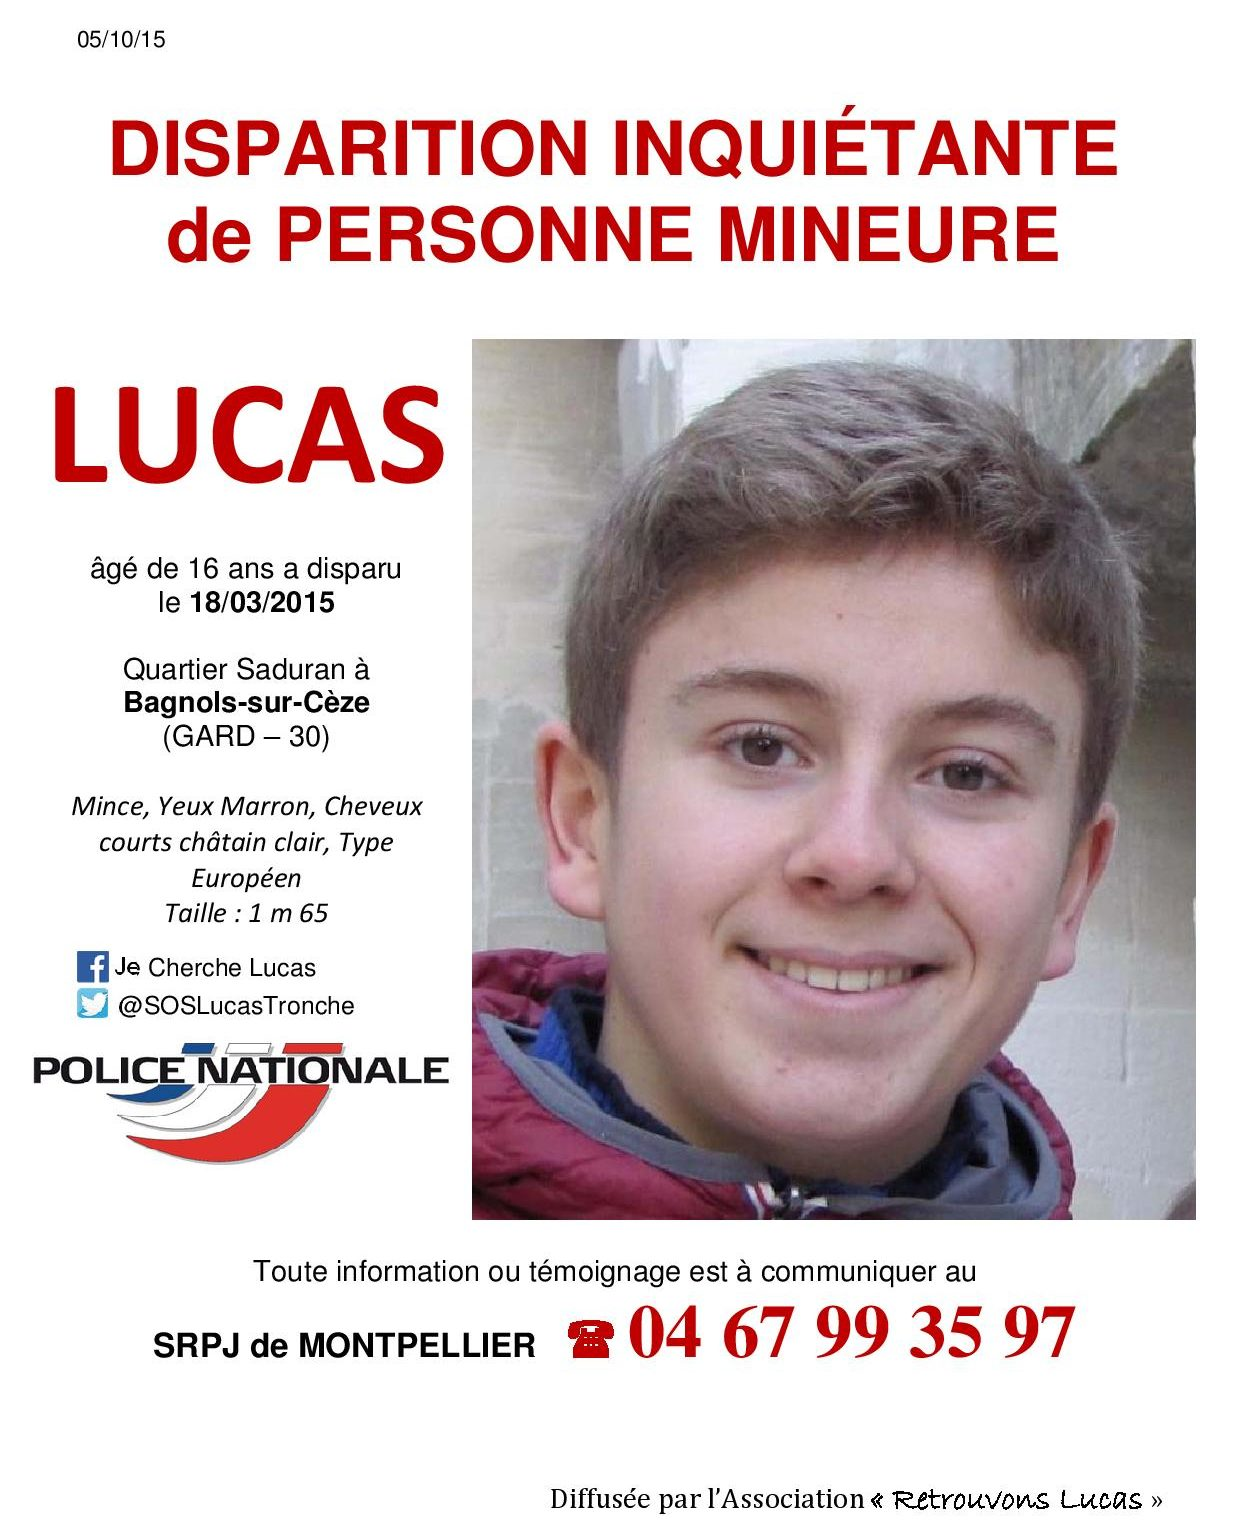 Photo of LUCAS TRONCHE Le procureur Maurel confirme les vérifications en cours